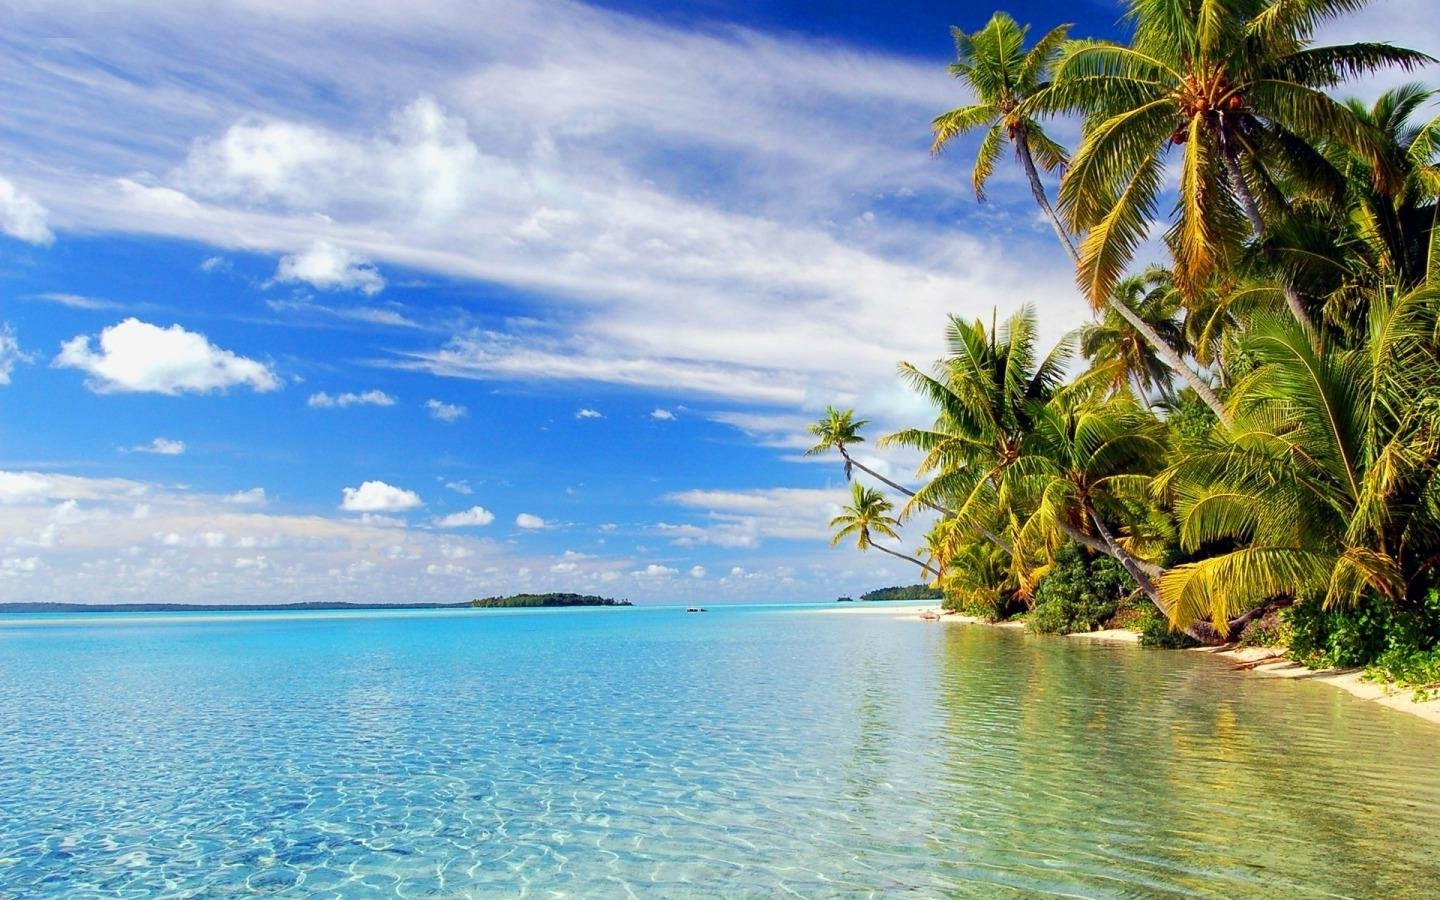 paradise-beach-nature-desktop-background